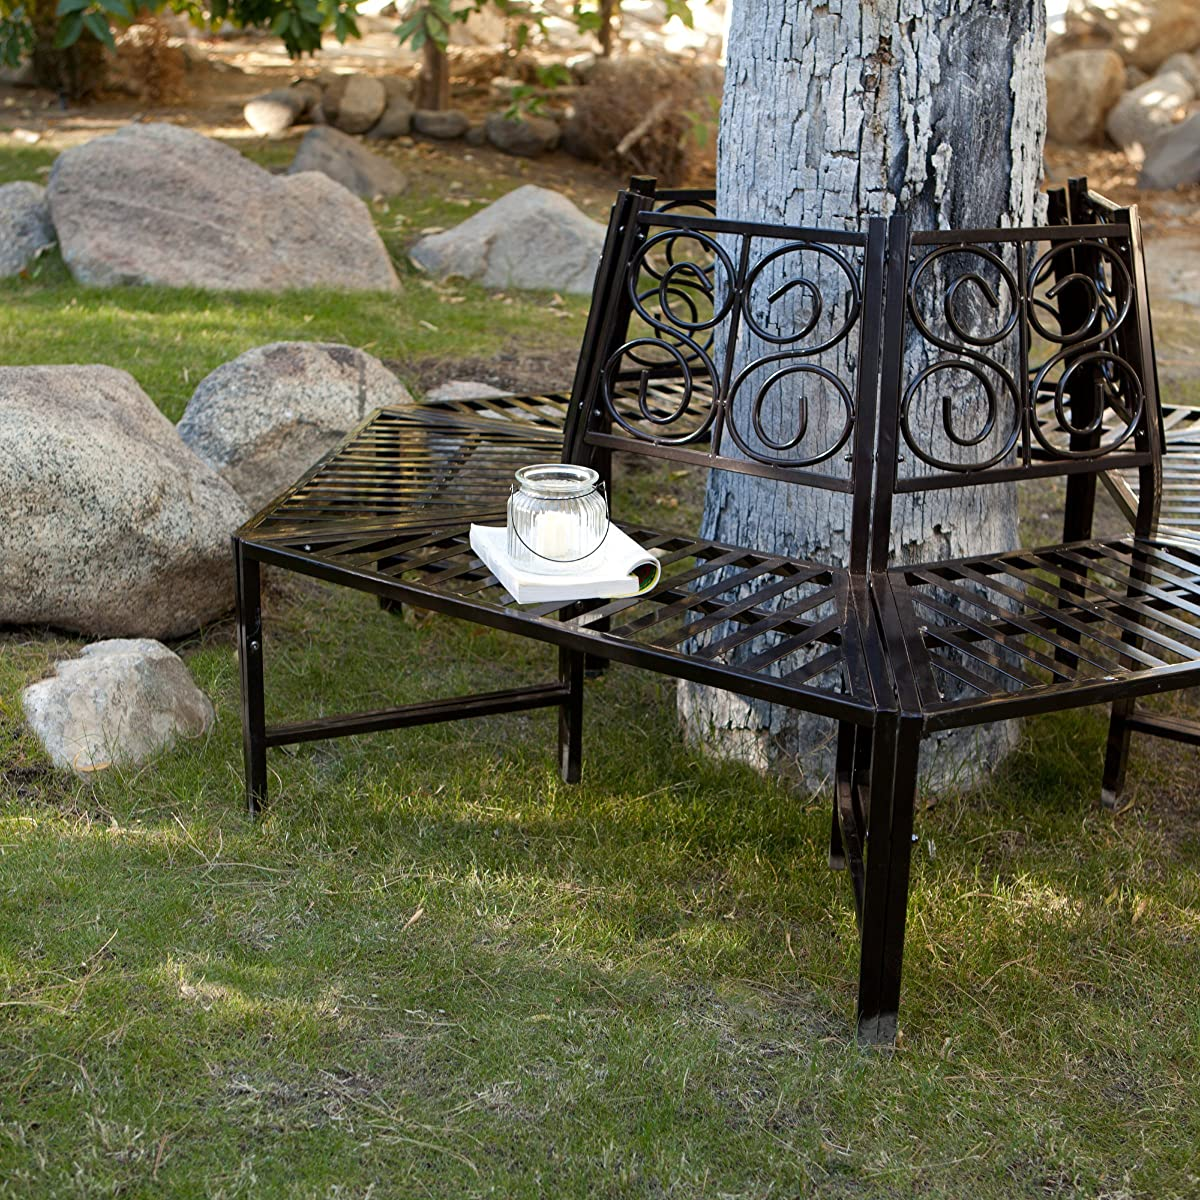 Wrap Around Tree Bench, This Metal Tree Surround Bench Is Ideal in Outdoor Gardens and Backyard Seating Area, Add This Wrap Around Garden Bench for Creativity! Surround Bench Is Made of Heavy Iron